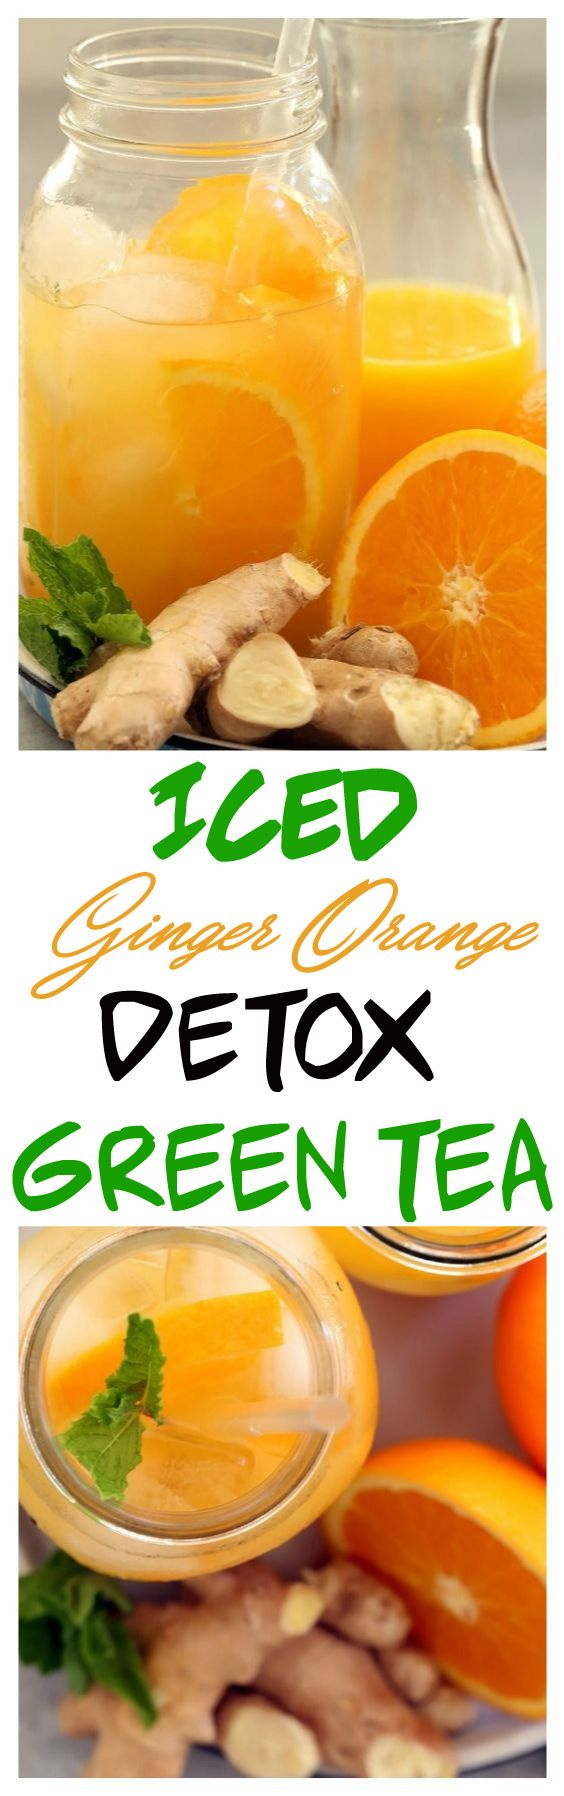 This Iced Orange Ginger Detox Green Tea is a simple fruit-flavored iced green tea recipe that's loaded with antioxidants and detoxifying benefits. Get a little pick-me-up with Iced Ginger Orange Detox Green Tea.